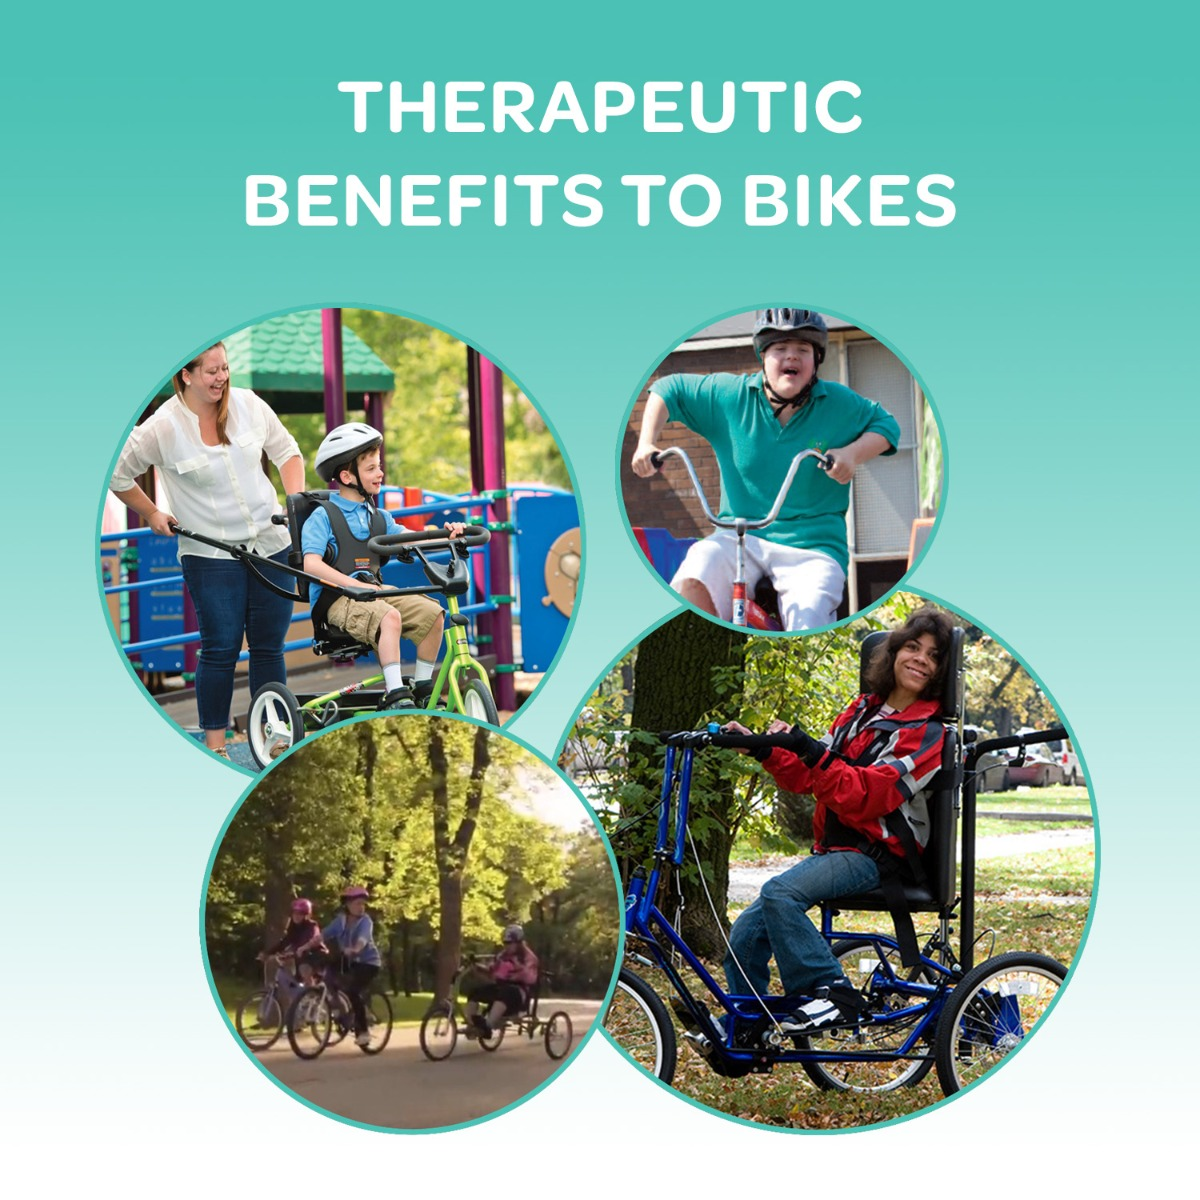 Therapeutic Benefits to Bikes